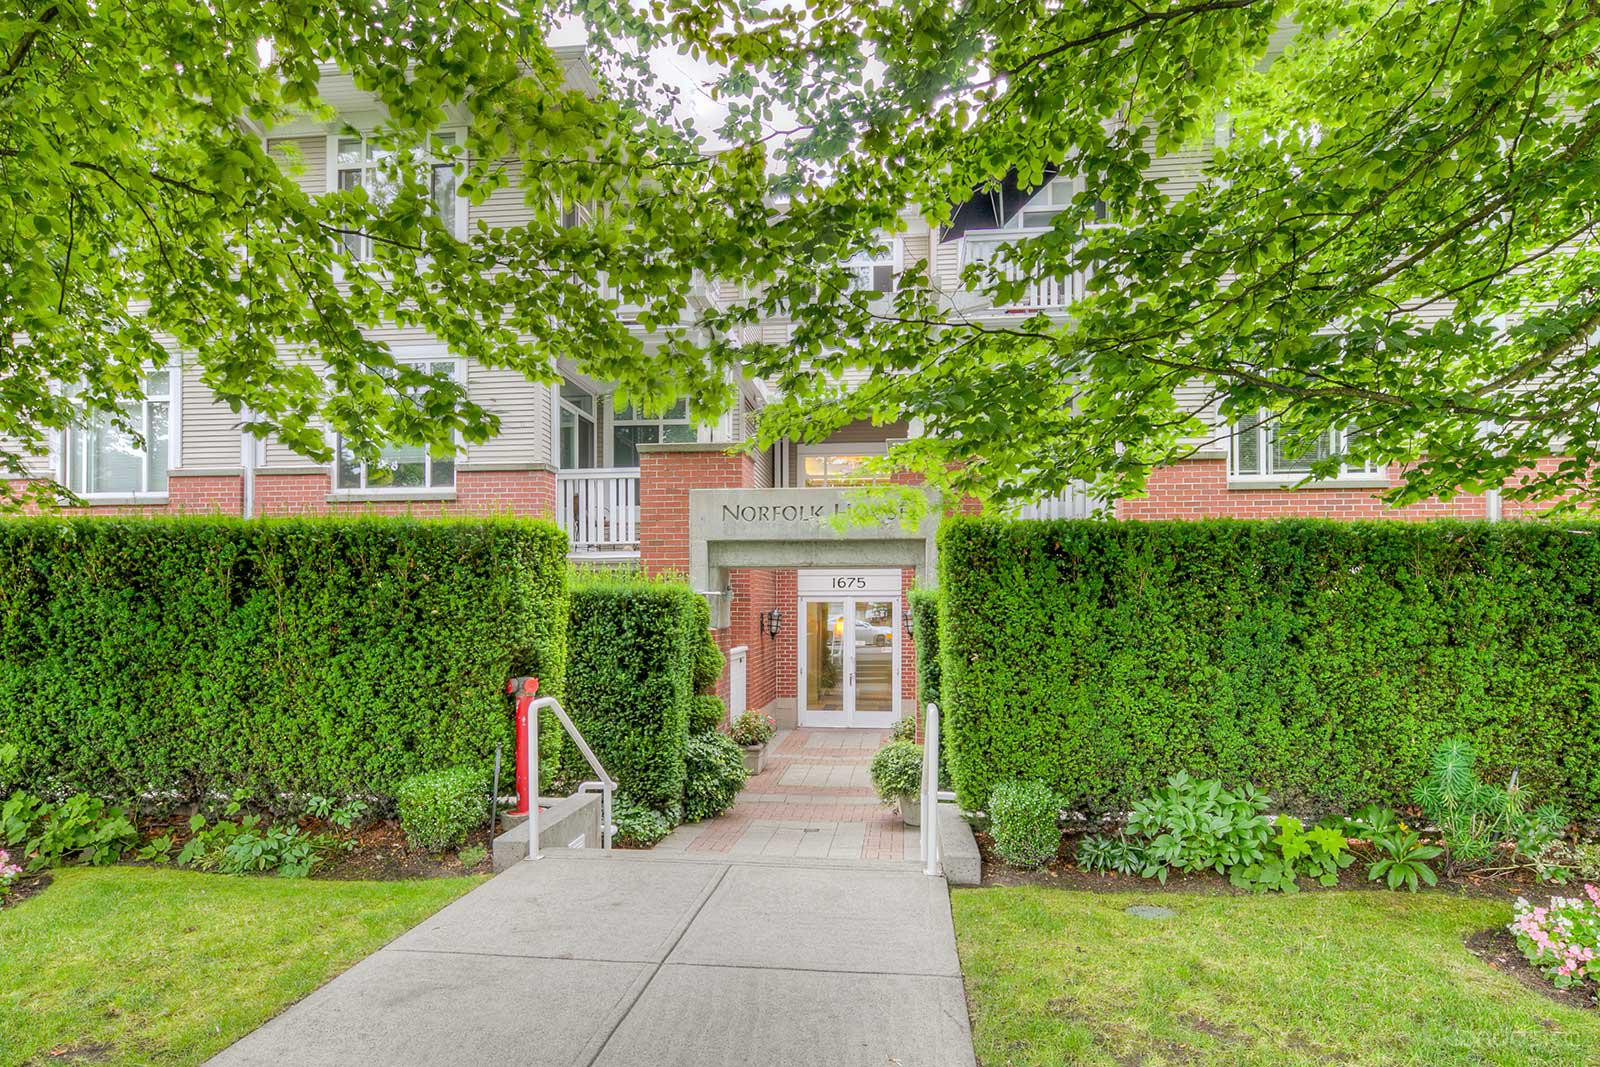 Norfolk House at 1675 W 10th Ave, Vancouver 1